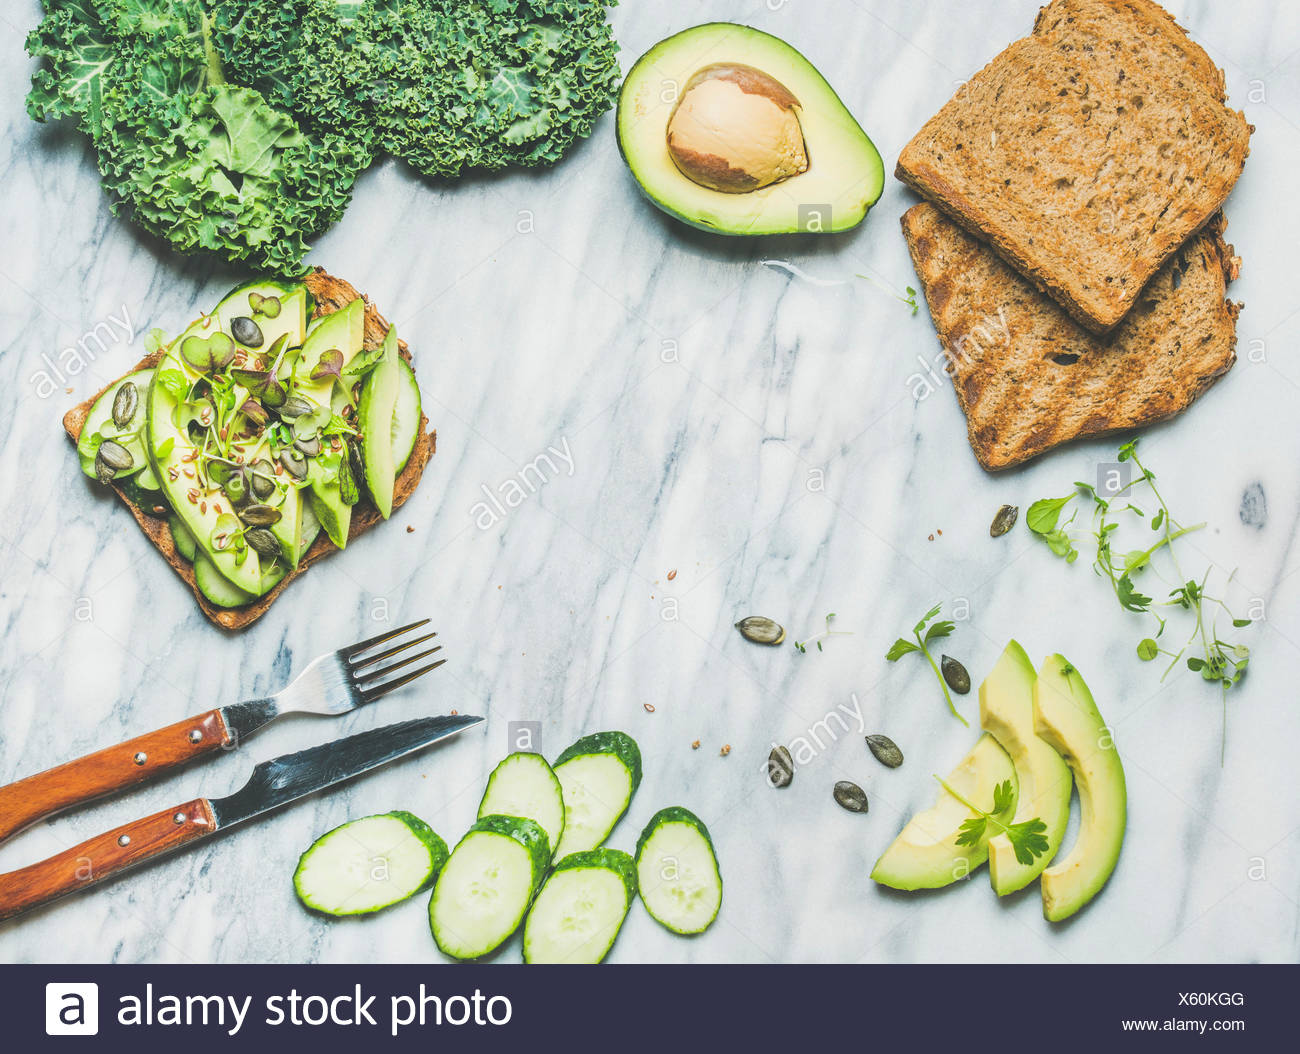 Healthy green veggie breakfast concept. Sandwich with avocado, cucumber, kale, kress sprouts, pumpkin seeds over marble background, top view, copy spa - Stock Image